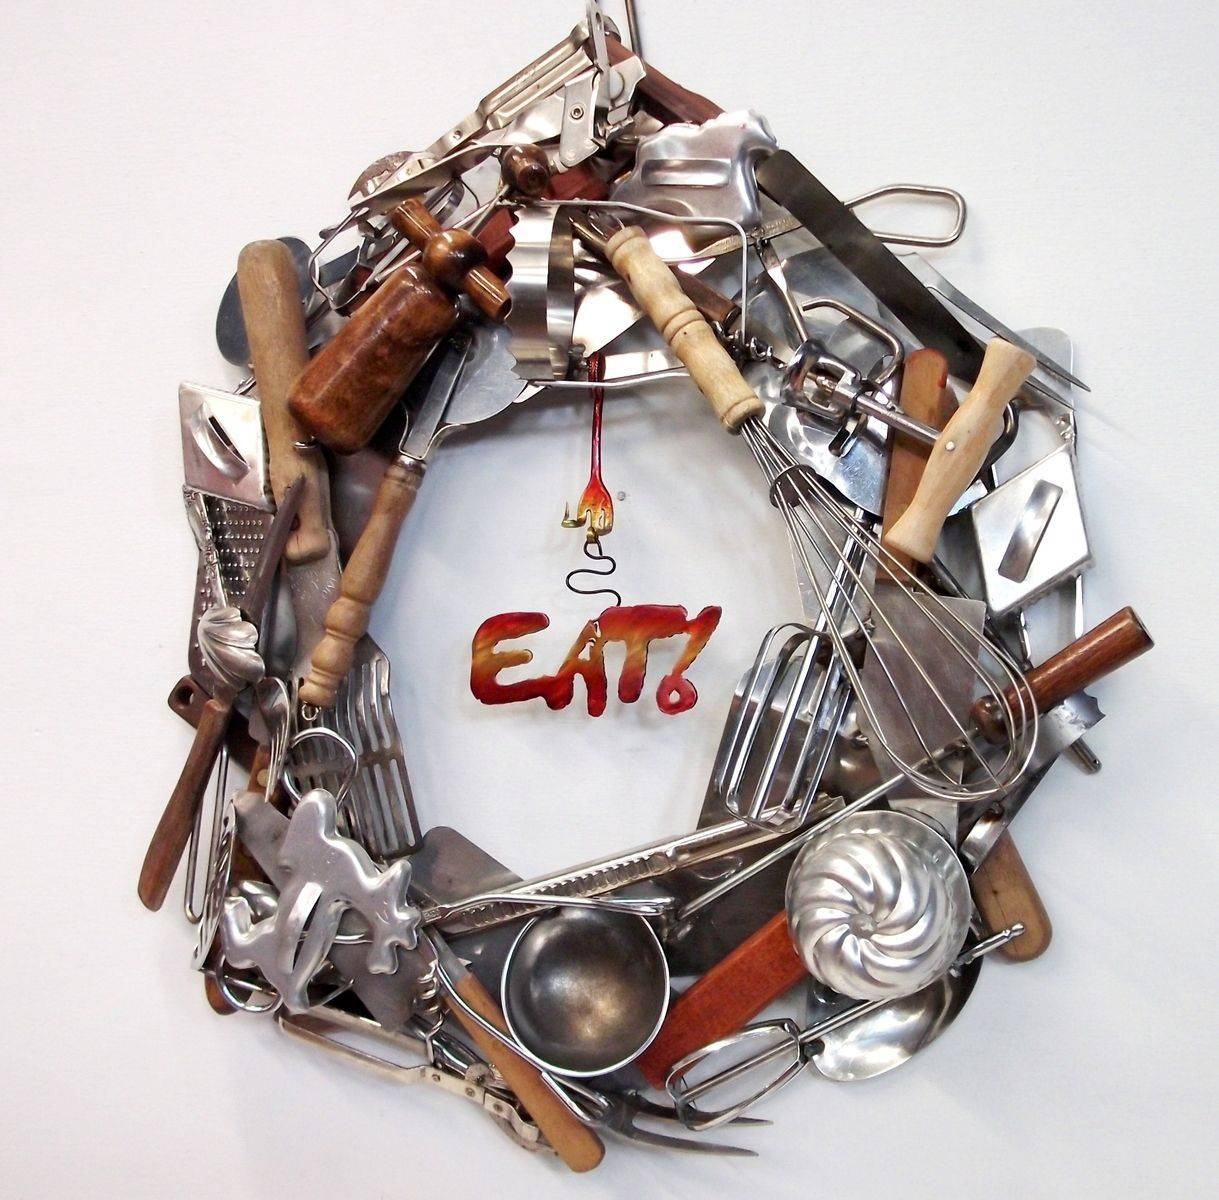 Handmade Home Decor, Custom Wreaths, Wall Art $100 – 500, Recycled Intended For Recent Recycled Wall Art (View 13 of 30)